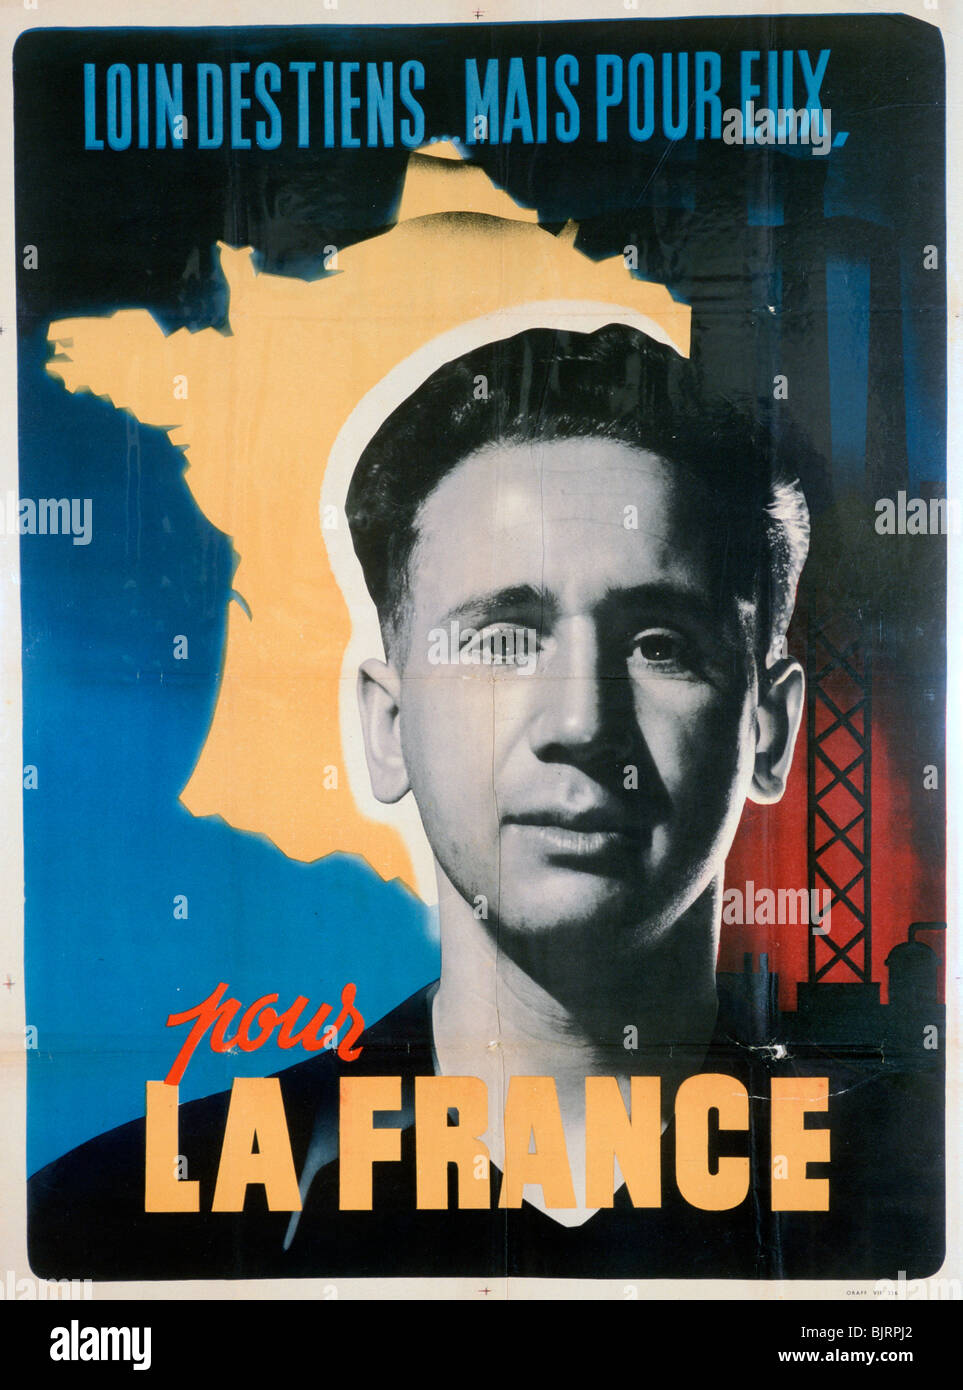 French voluntary work poster, c1942-1944. Stock Photo